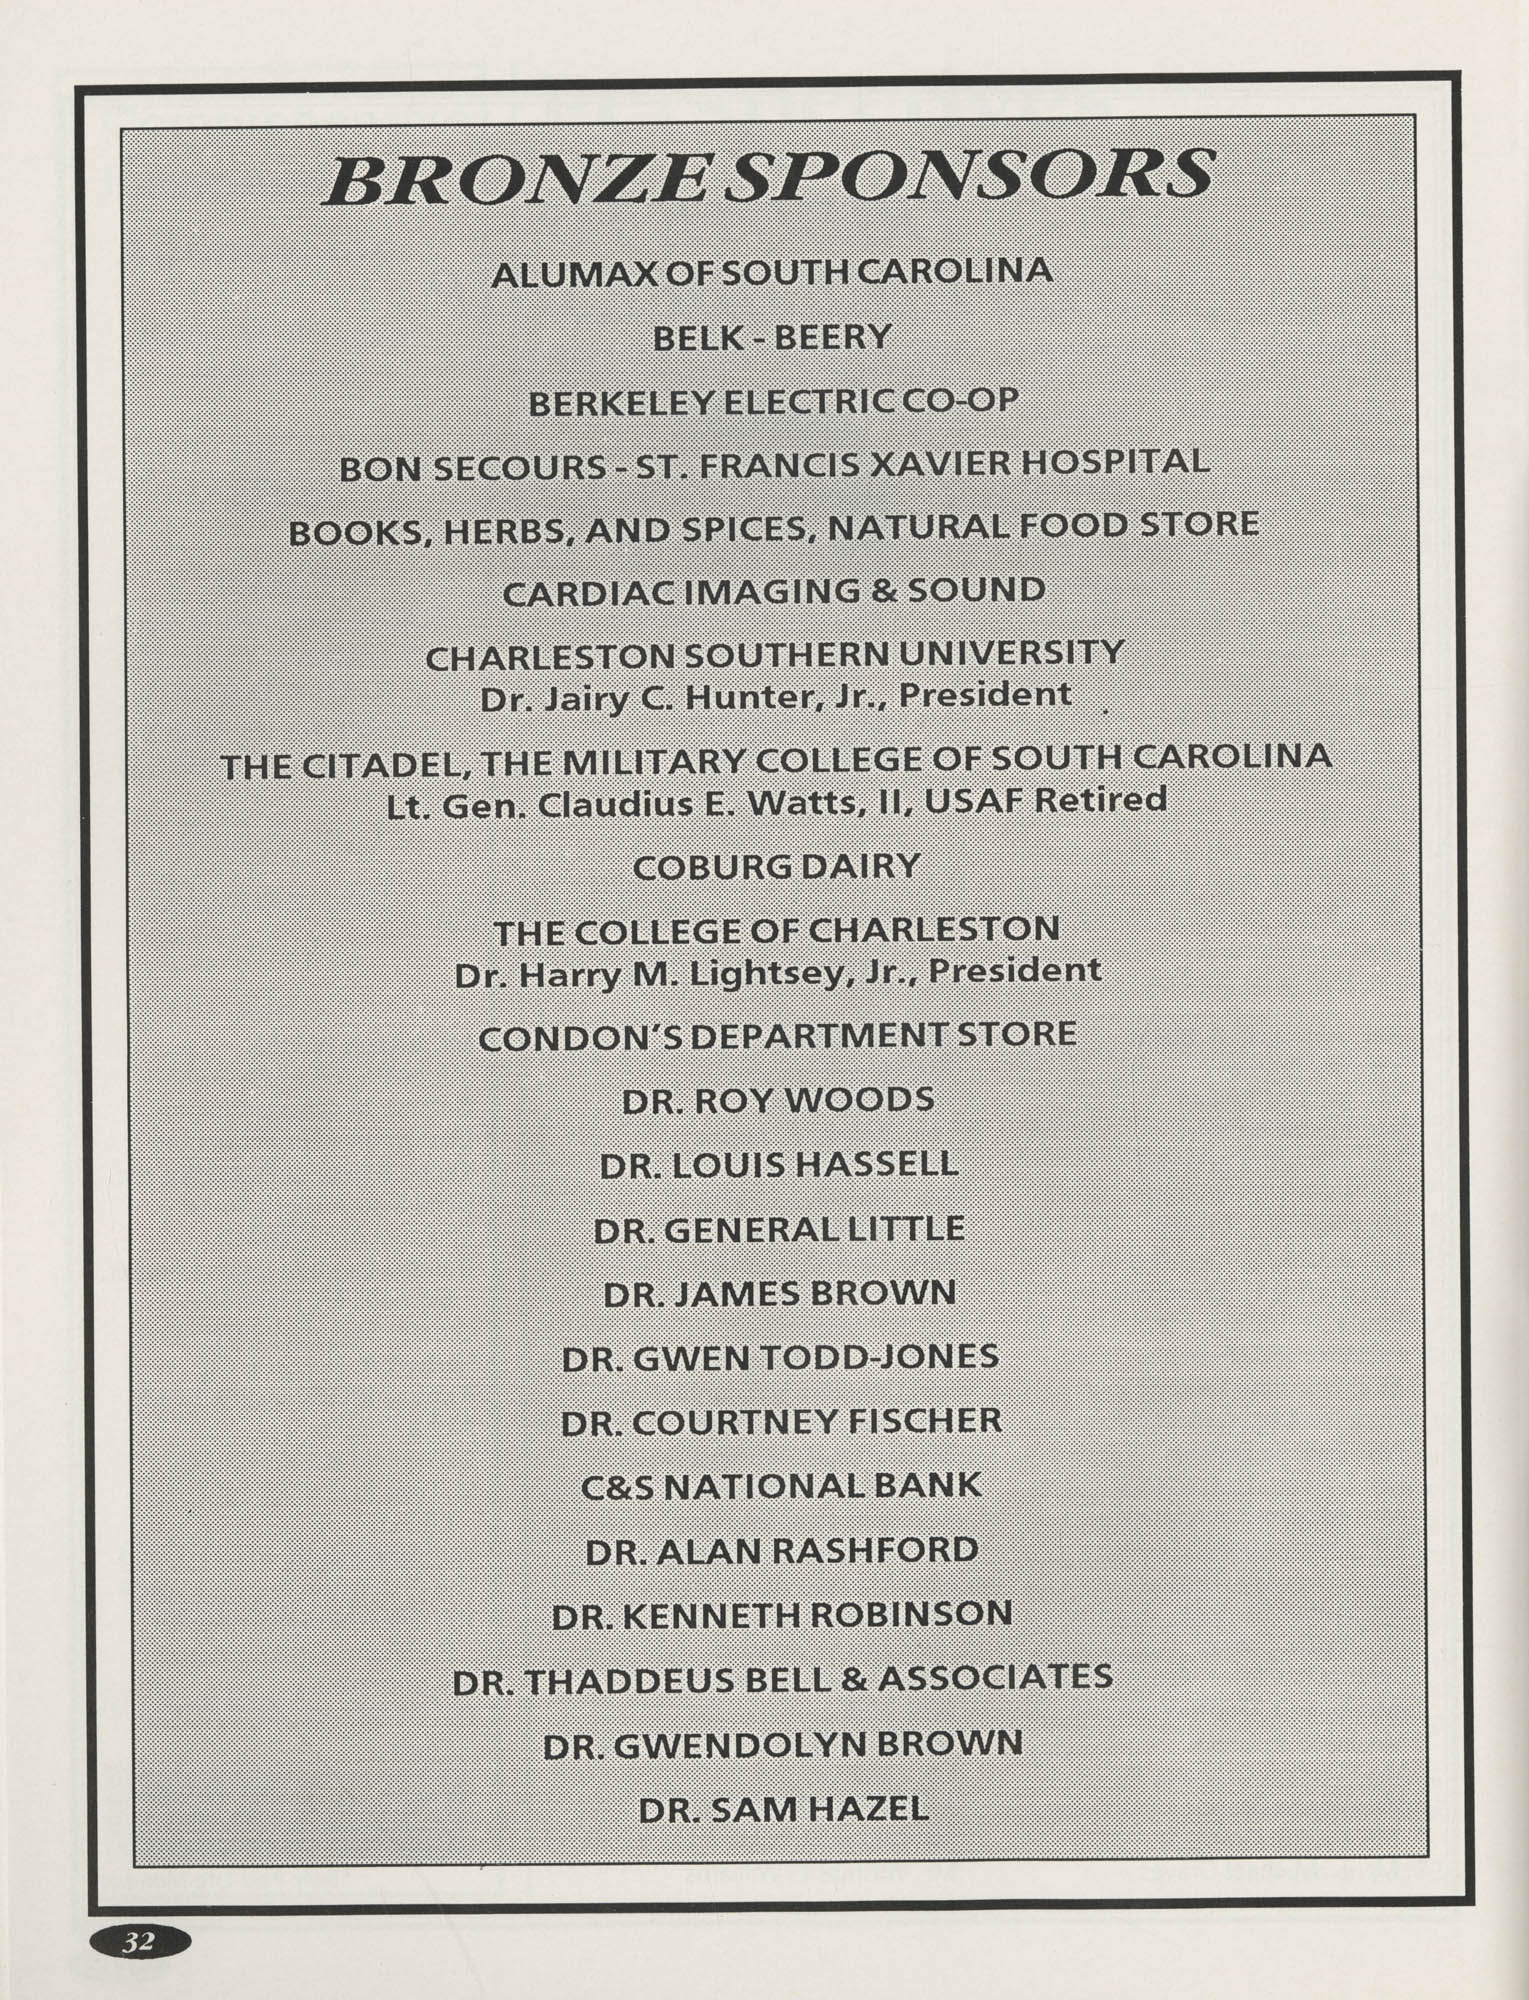 1991 Freedom Fund Magazine, Charleston Branch of the NAACP, Page 32